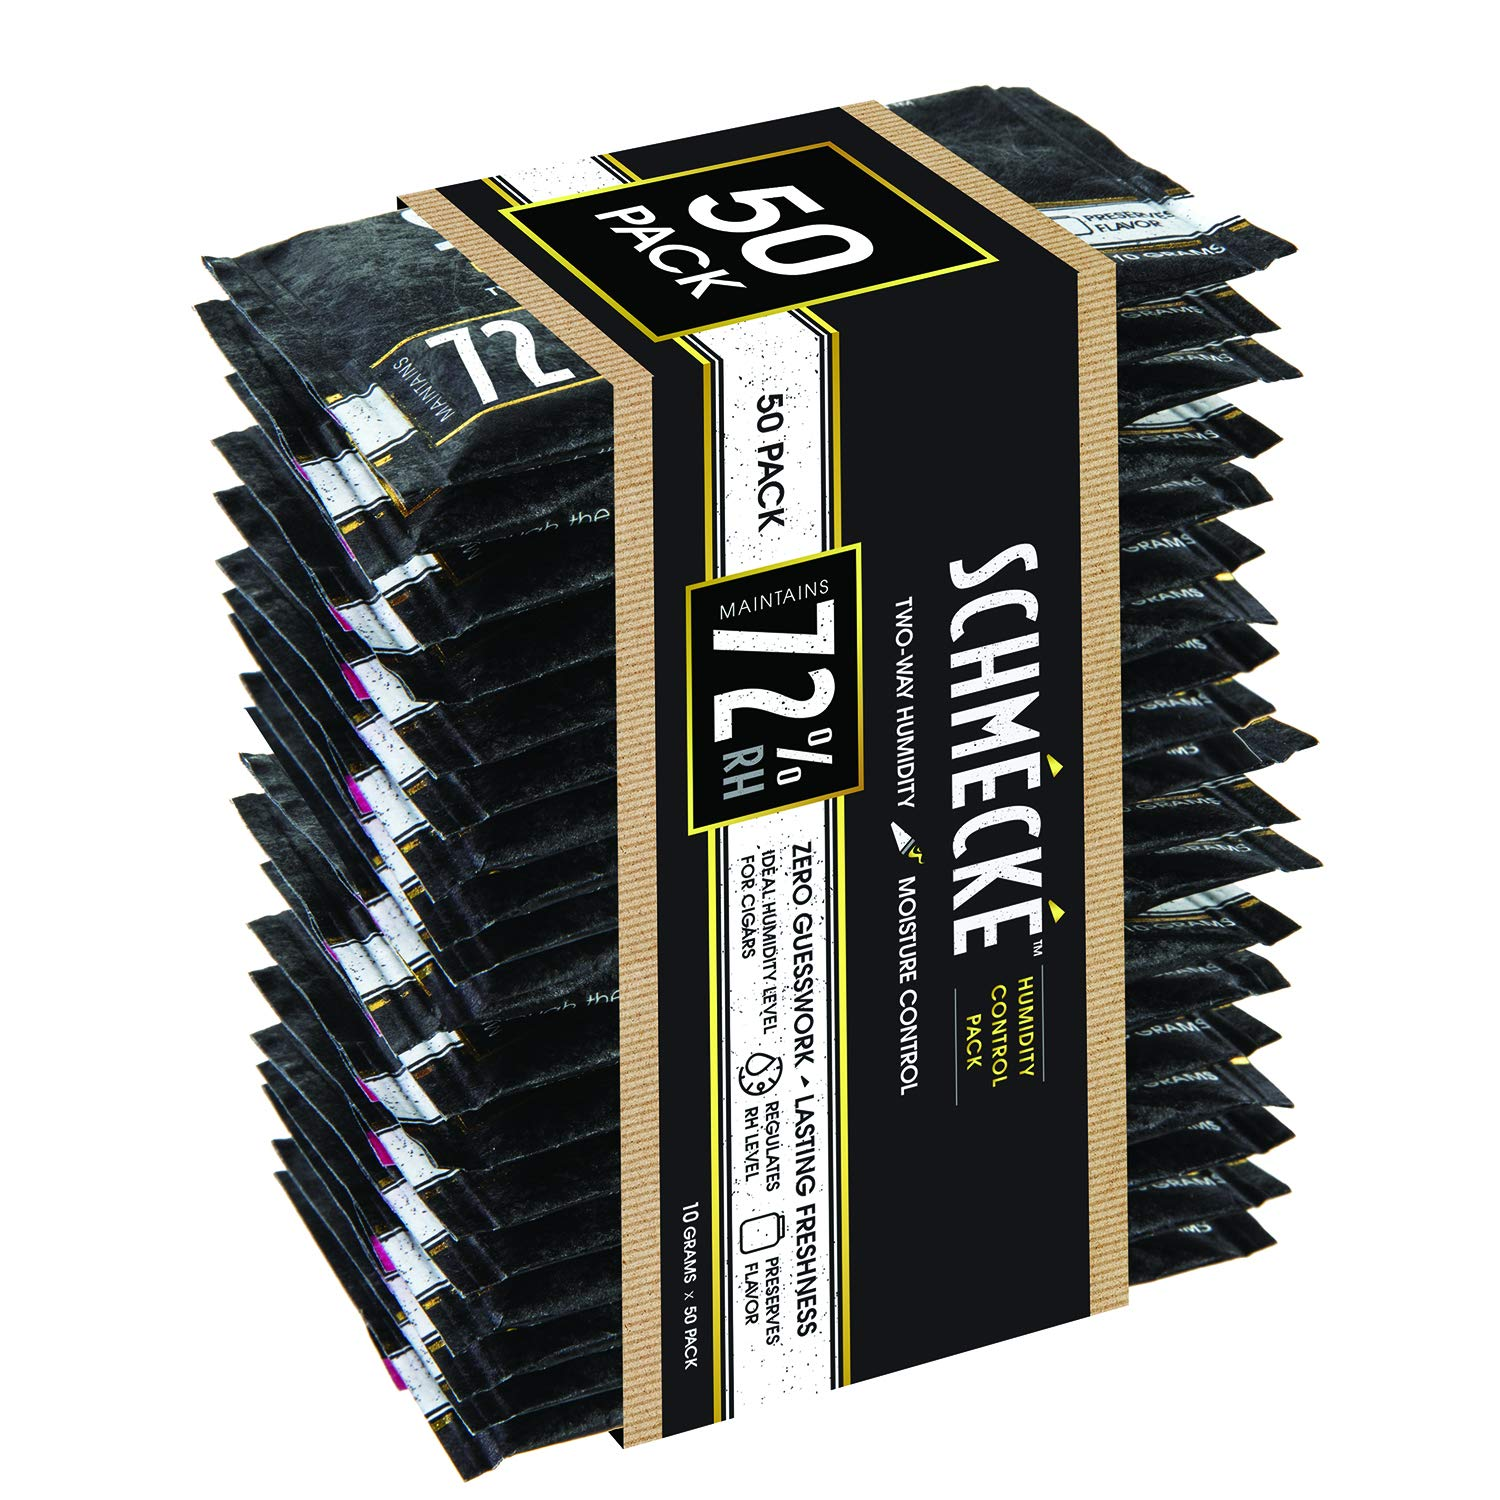 Schmécké 72% RH Cigar Two-Way Humidity Control 10 Grams x 50 Pack - Zero Guesswork - Regulate & Stabilize Humidor RH Level